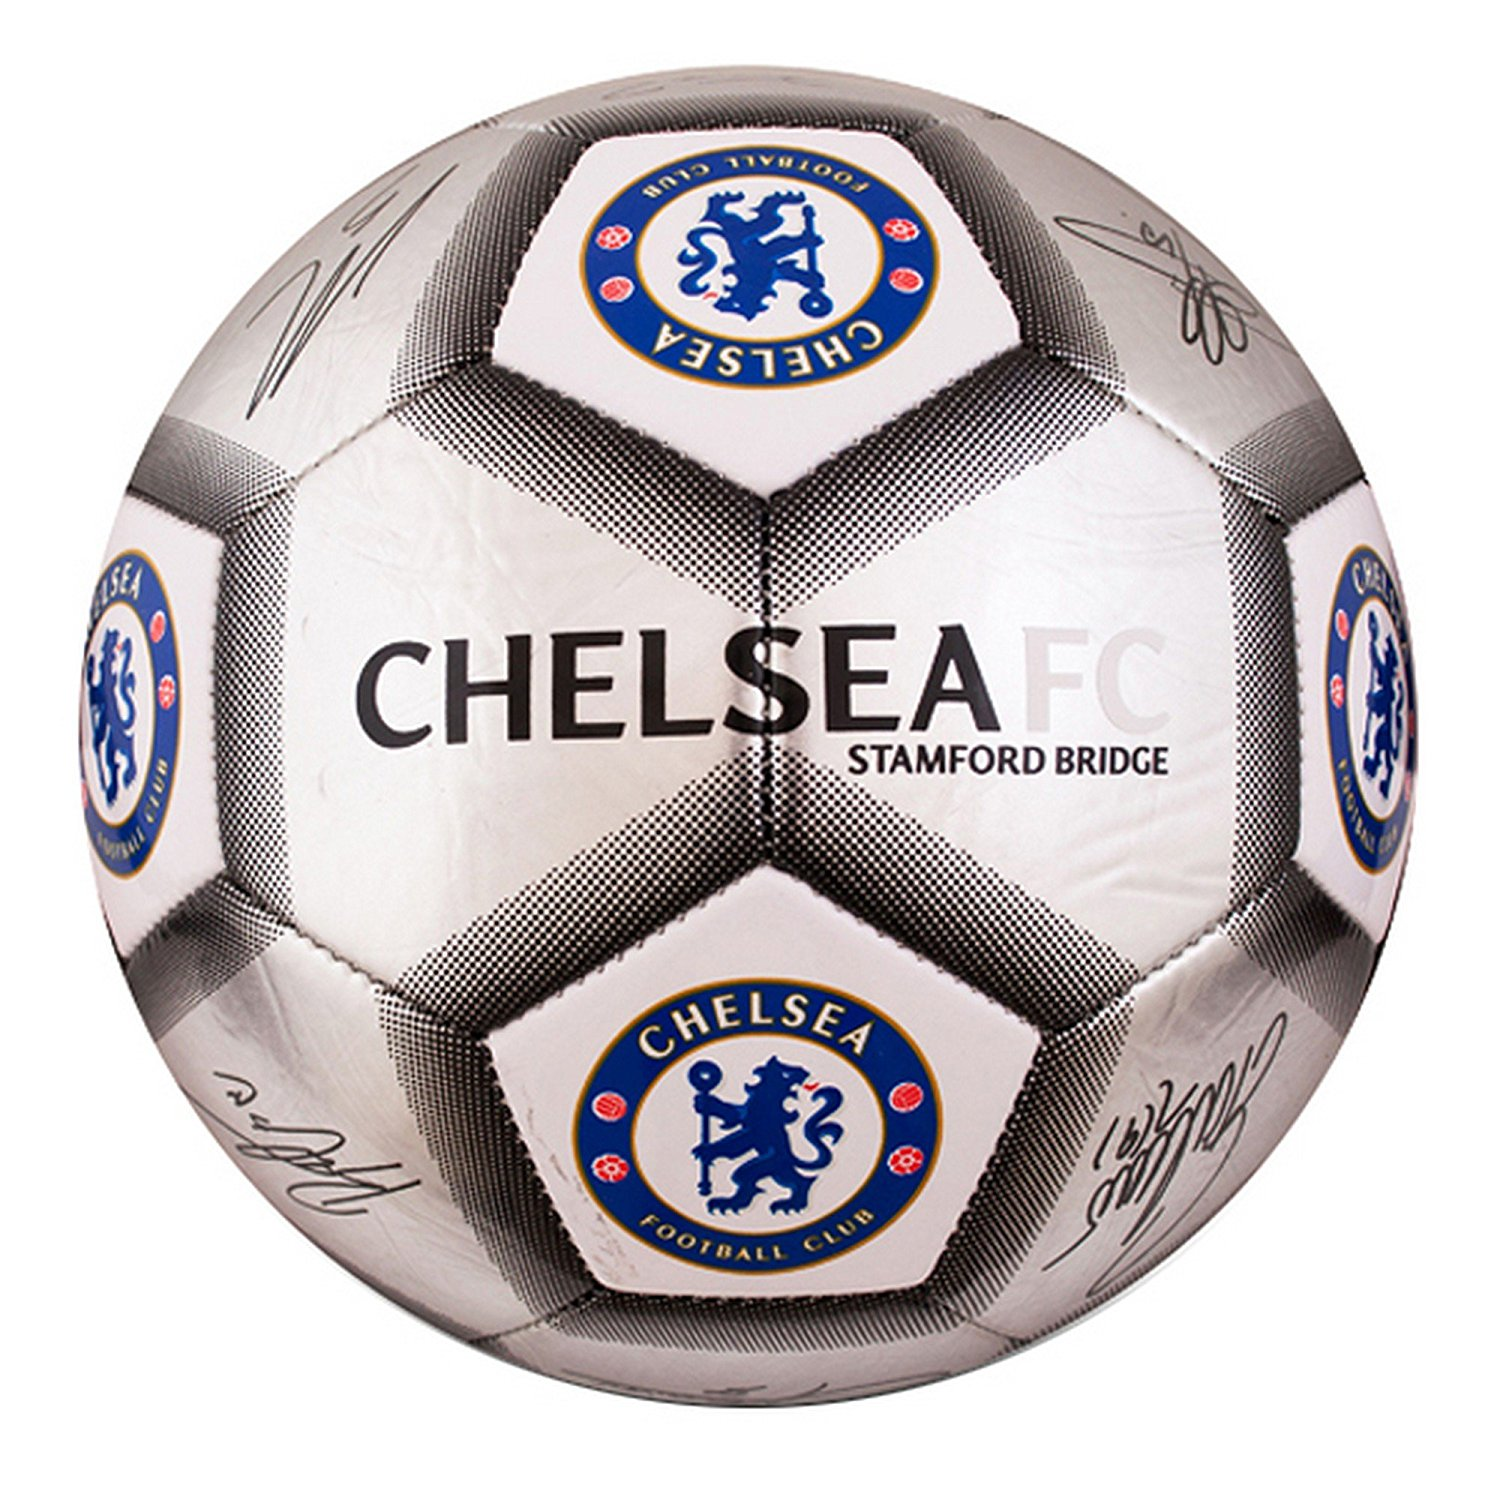 Chelsea FC Official Silver Signature Crest Football/Soccer Ball (Size 5)